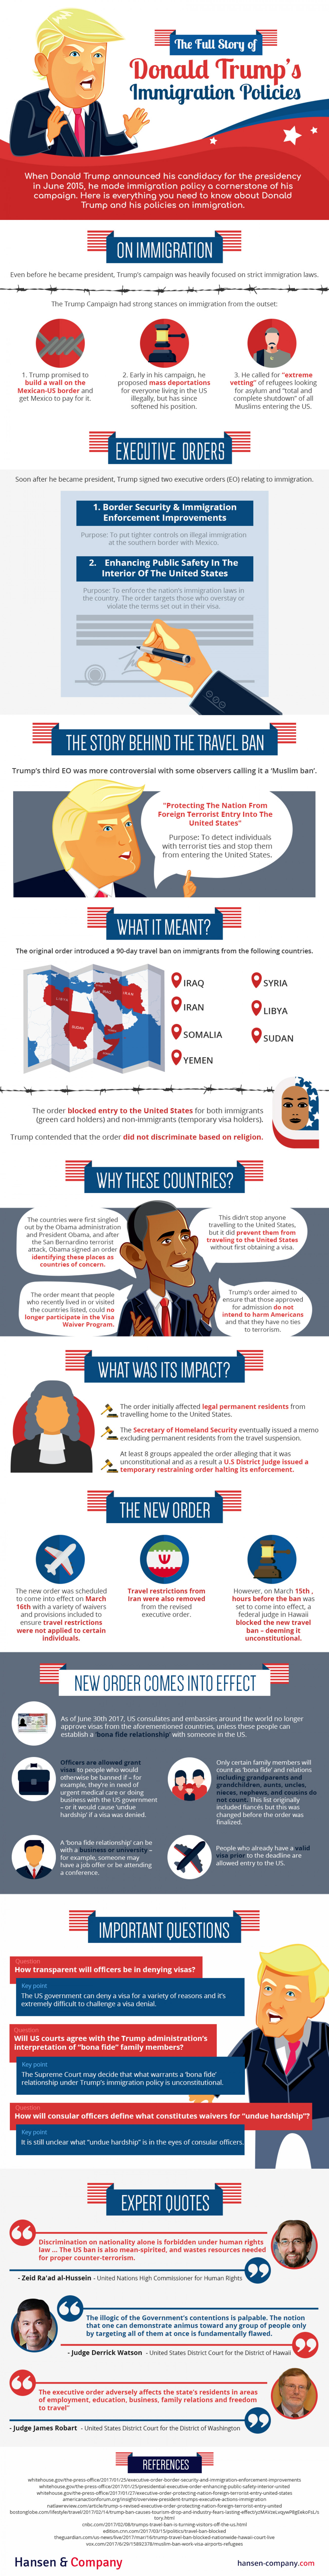 An infographic chronicling the truth about President Donald Trump's travel ban and immigration policies